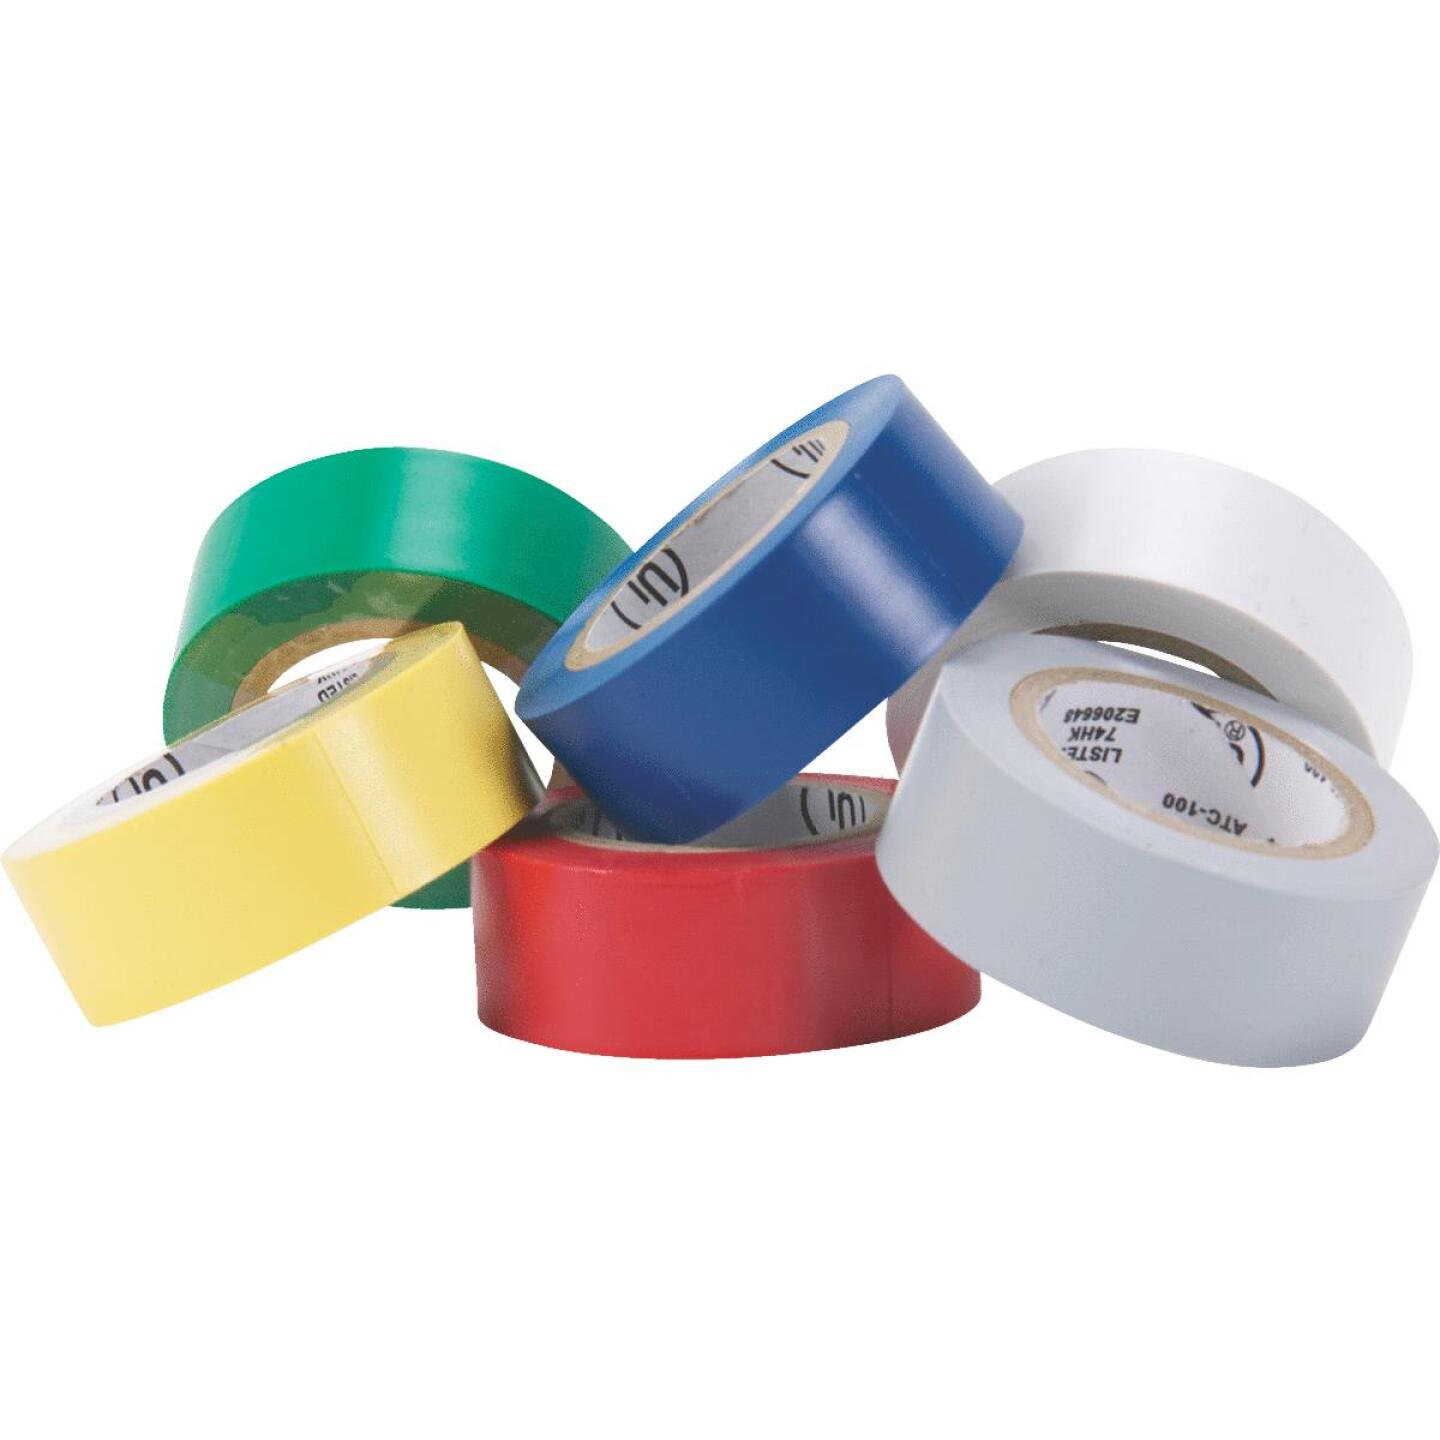 Do it General Purpose 3/4 In. x 20 Ft. Assorted Color Electrical Tape, (6-Pack) Image 1